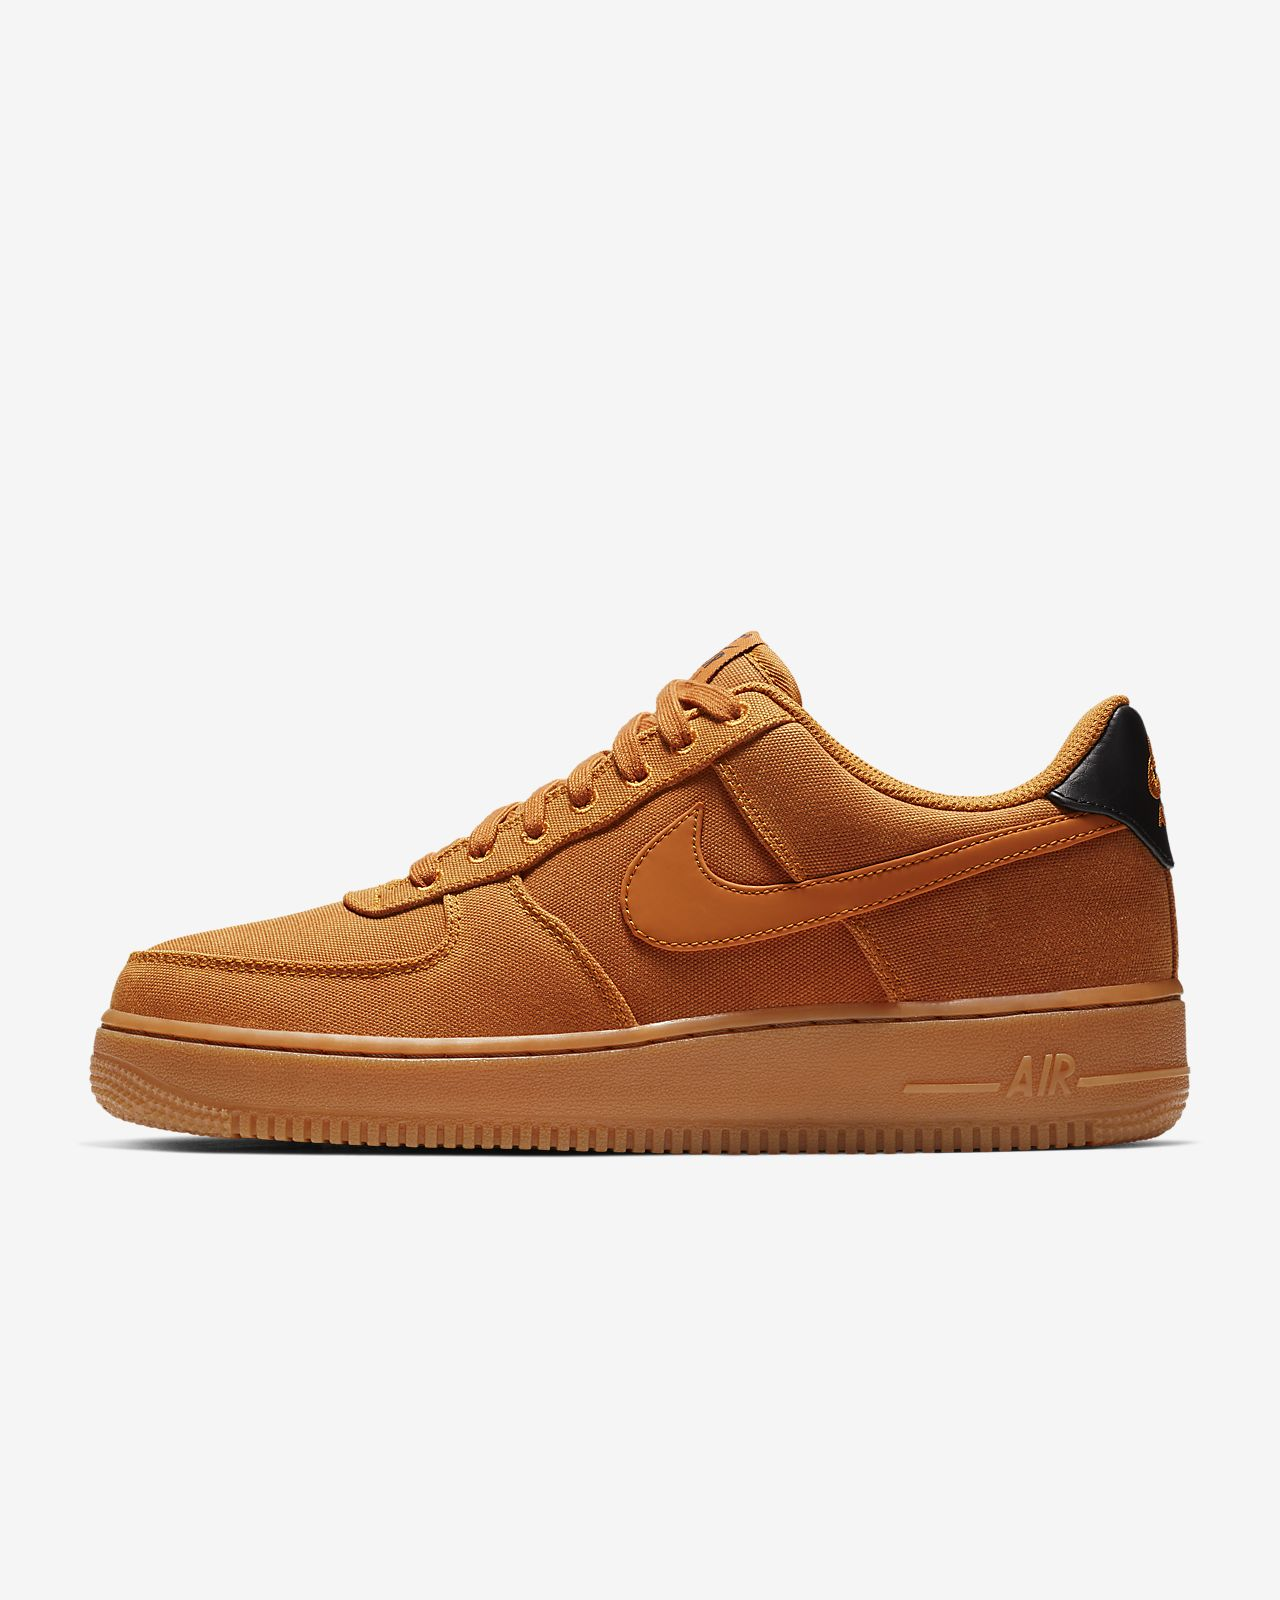 the latest 59c92 2e6a1 ... Chaussure Nike Air Force 1  07 LV8 Style pour Homme